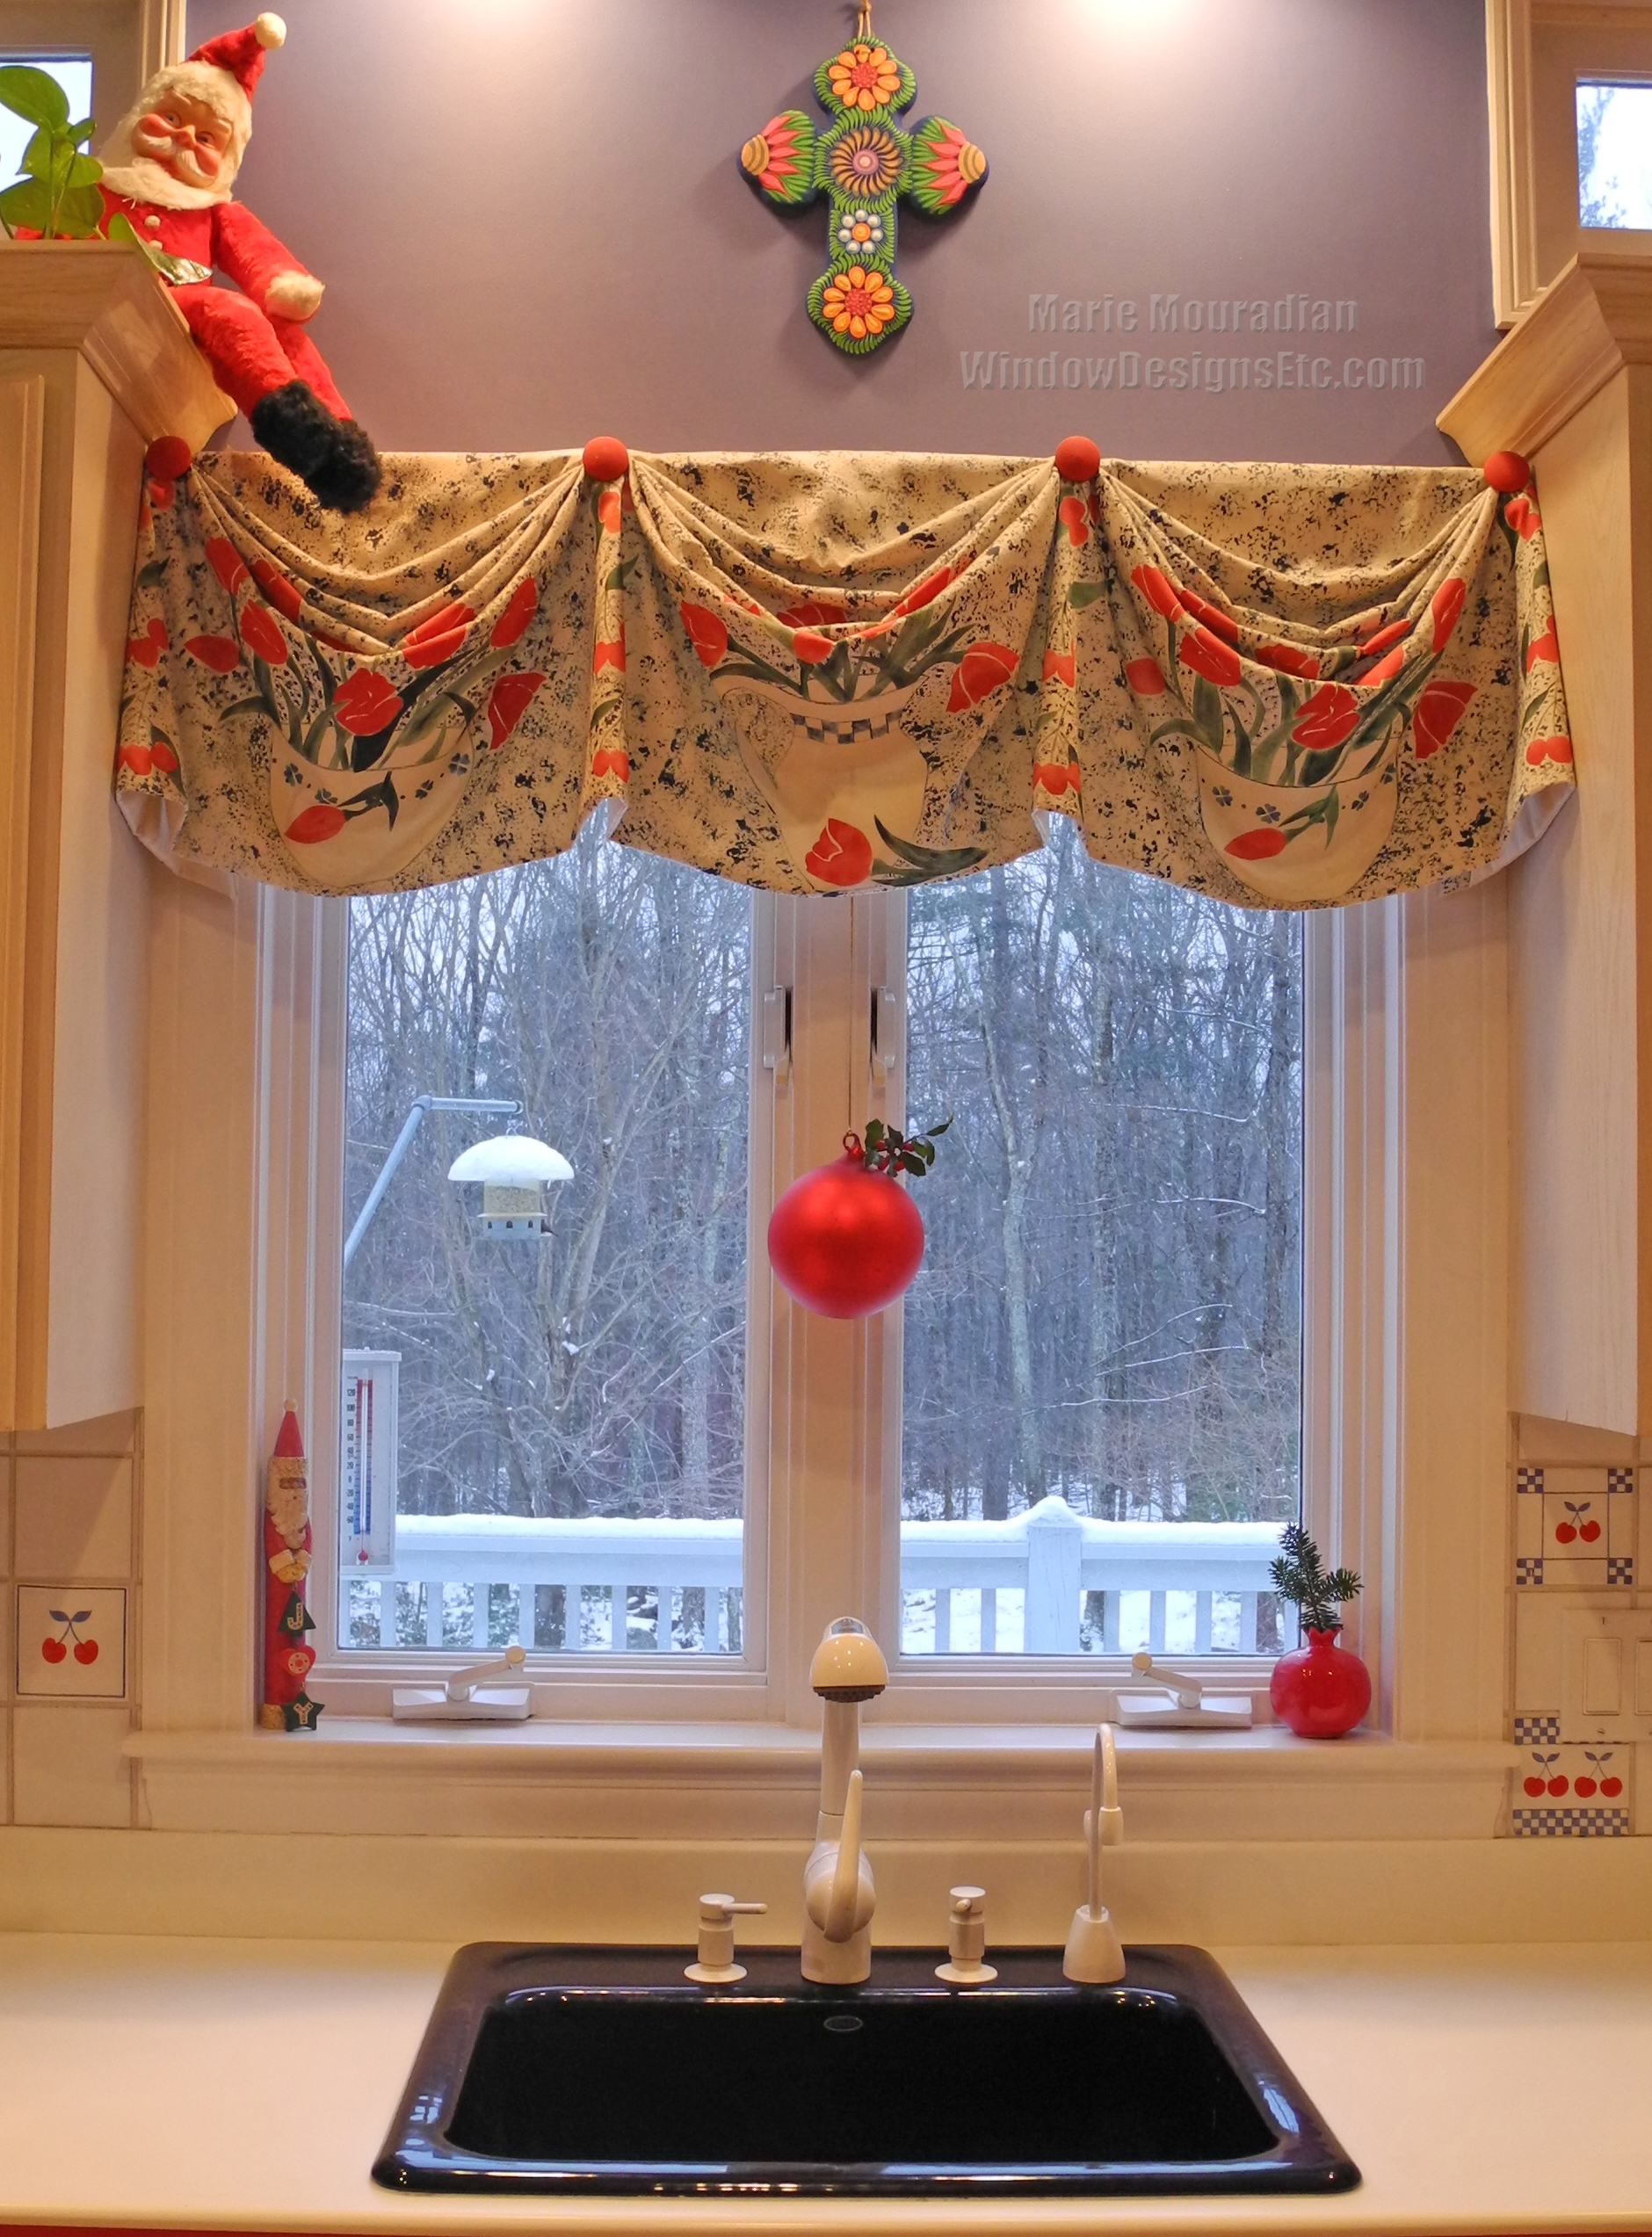 Holiday Window Ideas - Christmas Kitchen Windows on decorating ideas for vaulted ceilings, decorating ideas for mirrors, decorating ideas for bedrooms, decorating ideas for living room, decorating ideas for doors, decorating ideas for dining room, decorating ideas for floors, country decorating with old windows, decorating ideas for decks, decorating above kitchen window ideas, decorating ideas for fireplaces,